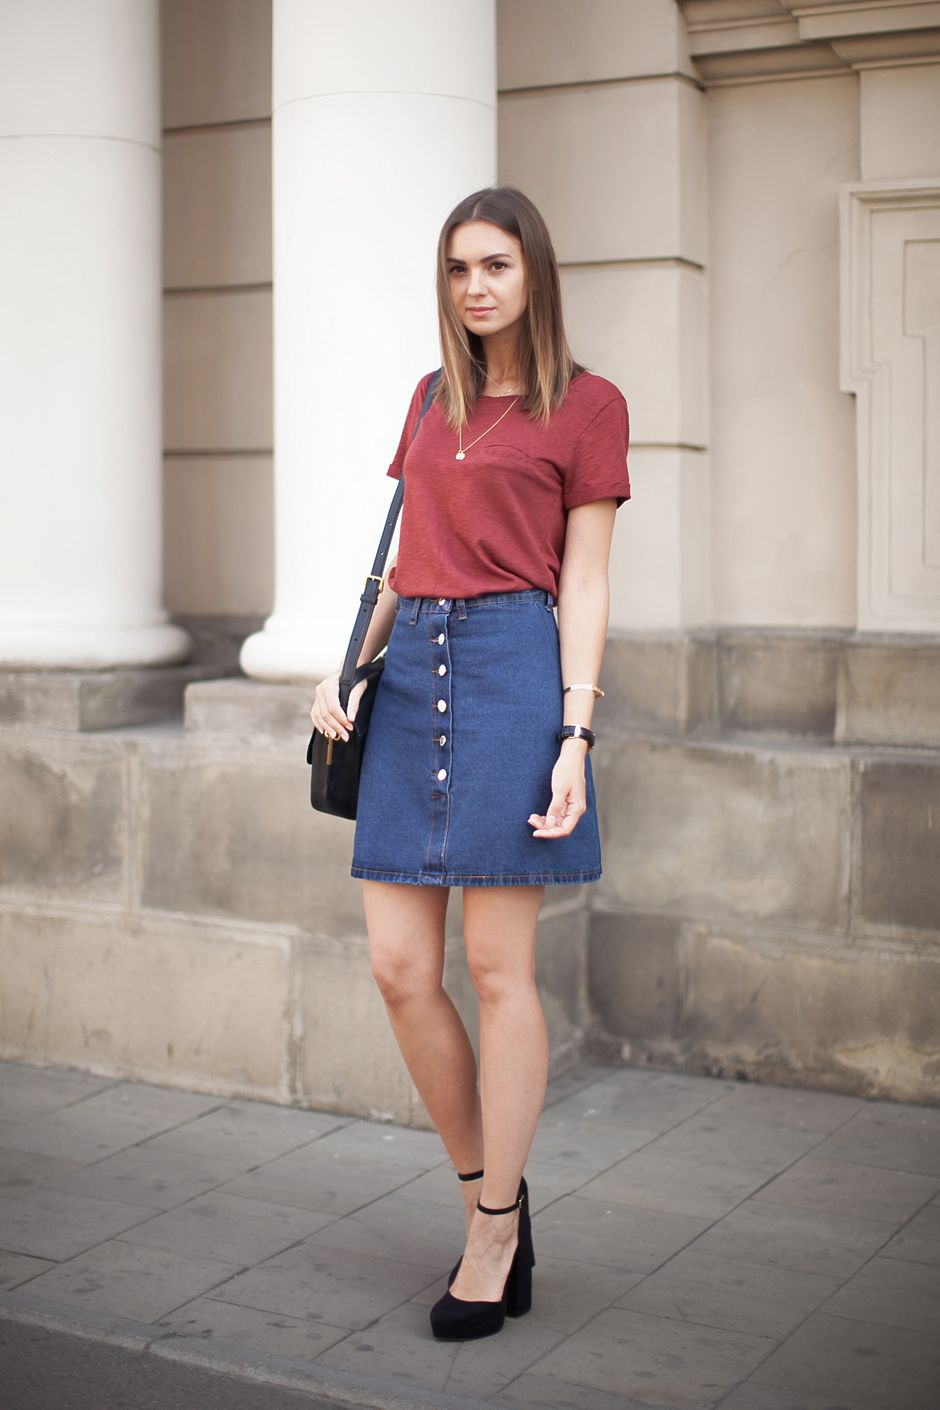 Superb Denim Skirt for Everyone : Denim Skirt Outfits Ideas ...